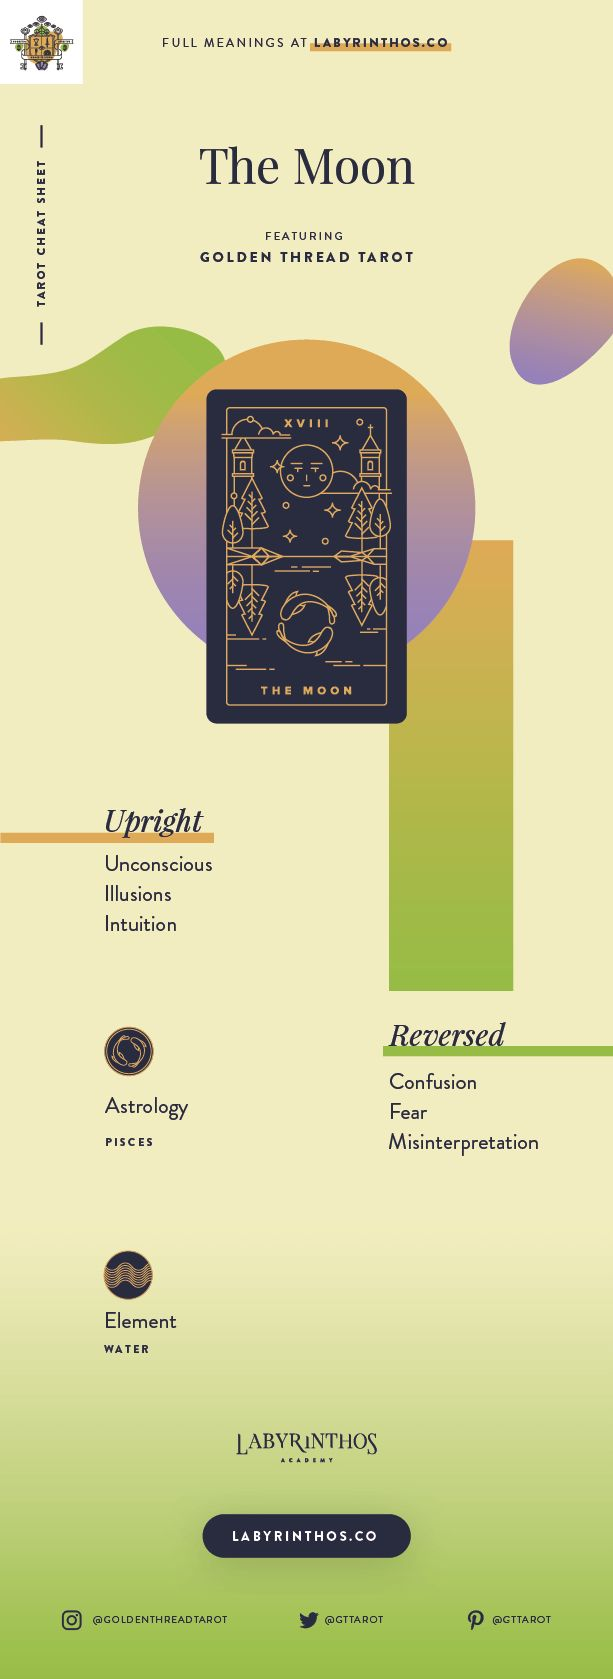 The Moon Meaning - Tarot Card Meanings Cheat Sheet. Art from Golden Thread Tarot.